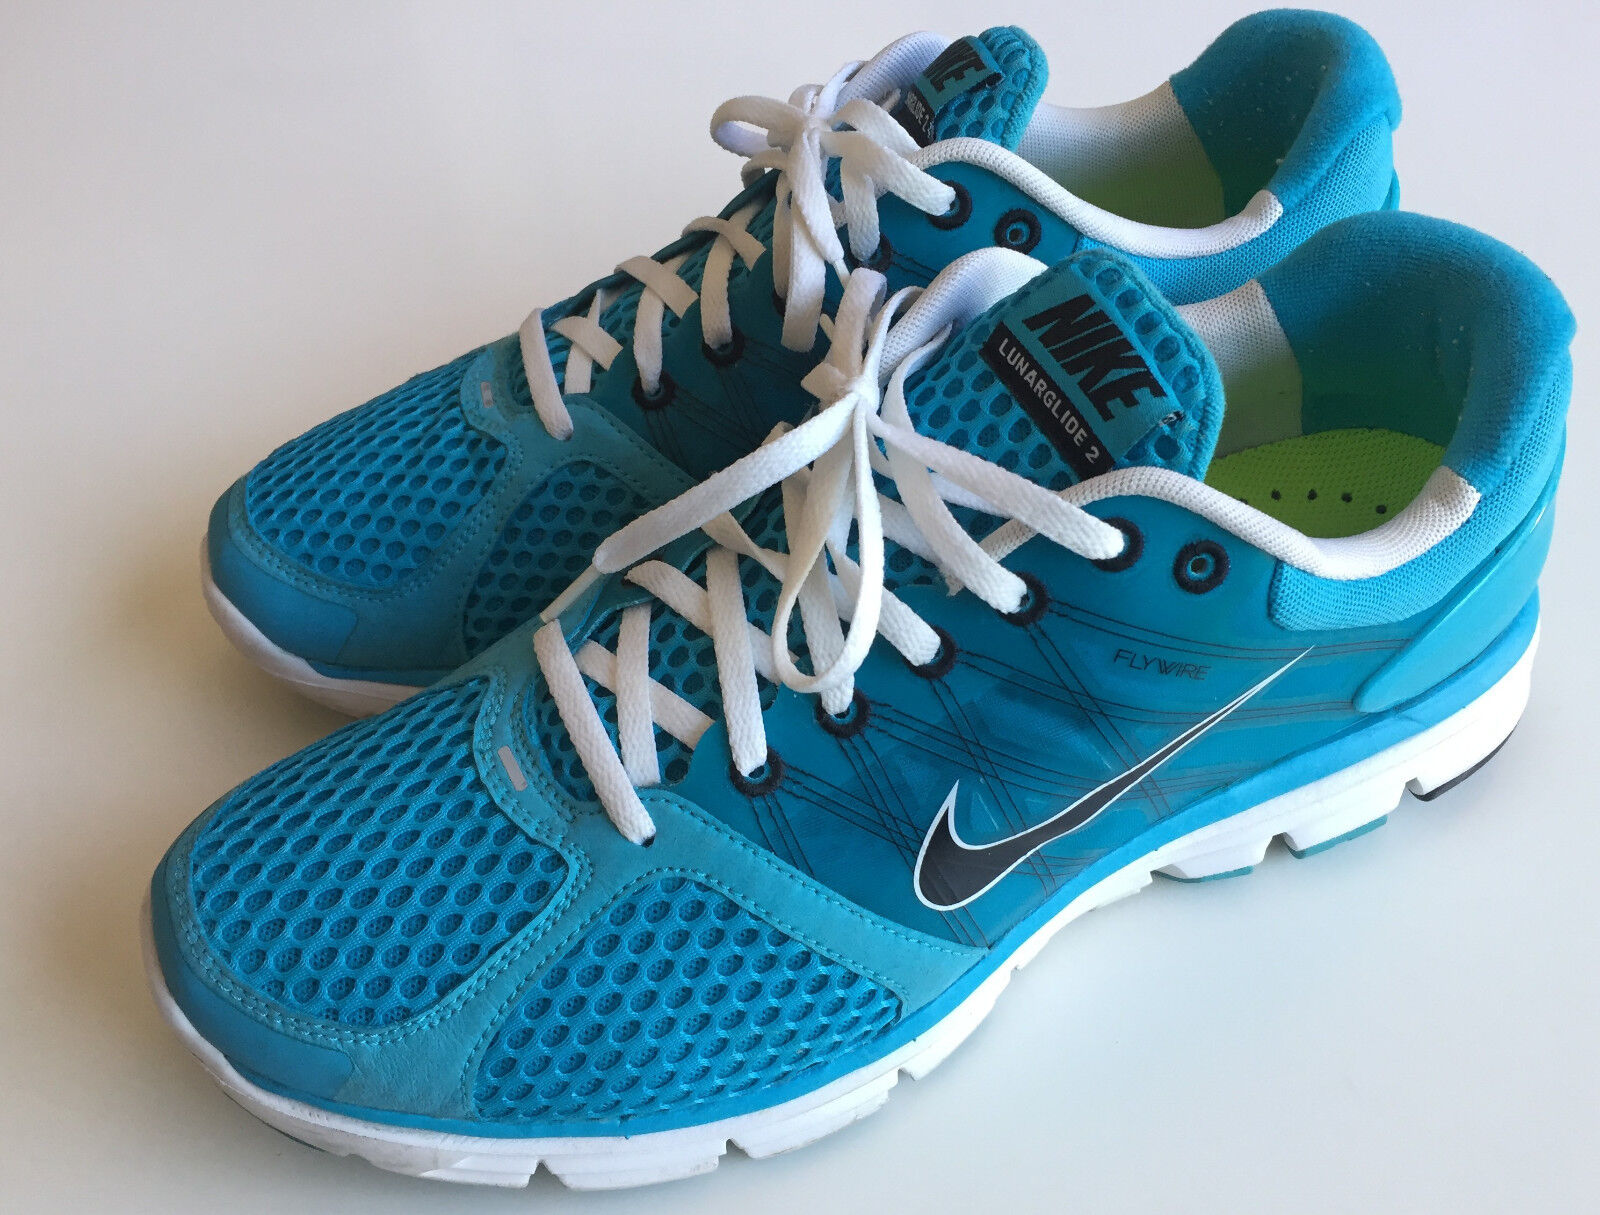 Nike Lunar Gluide 2 Blue Men's Sz 12 Running Shoes NDS